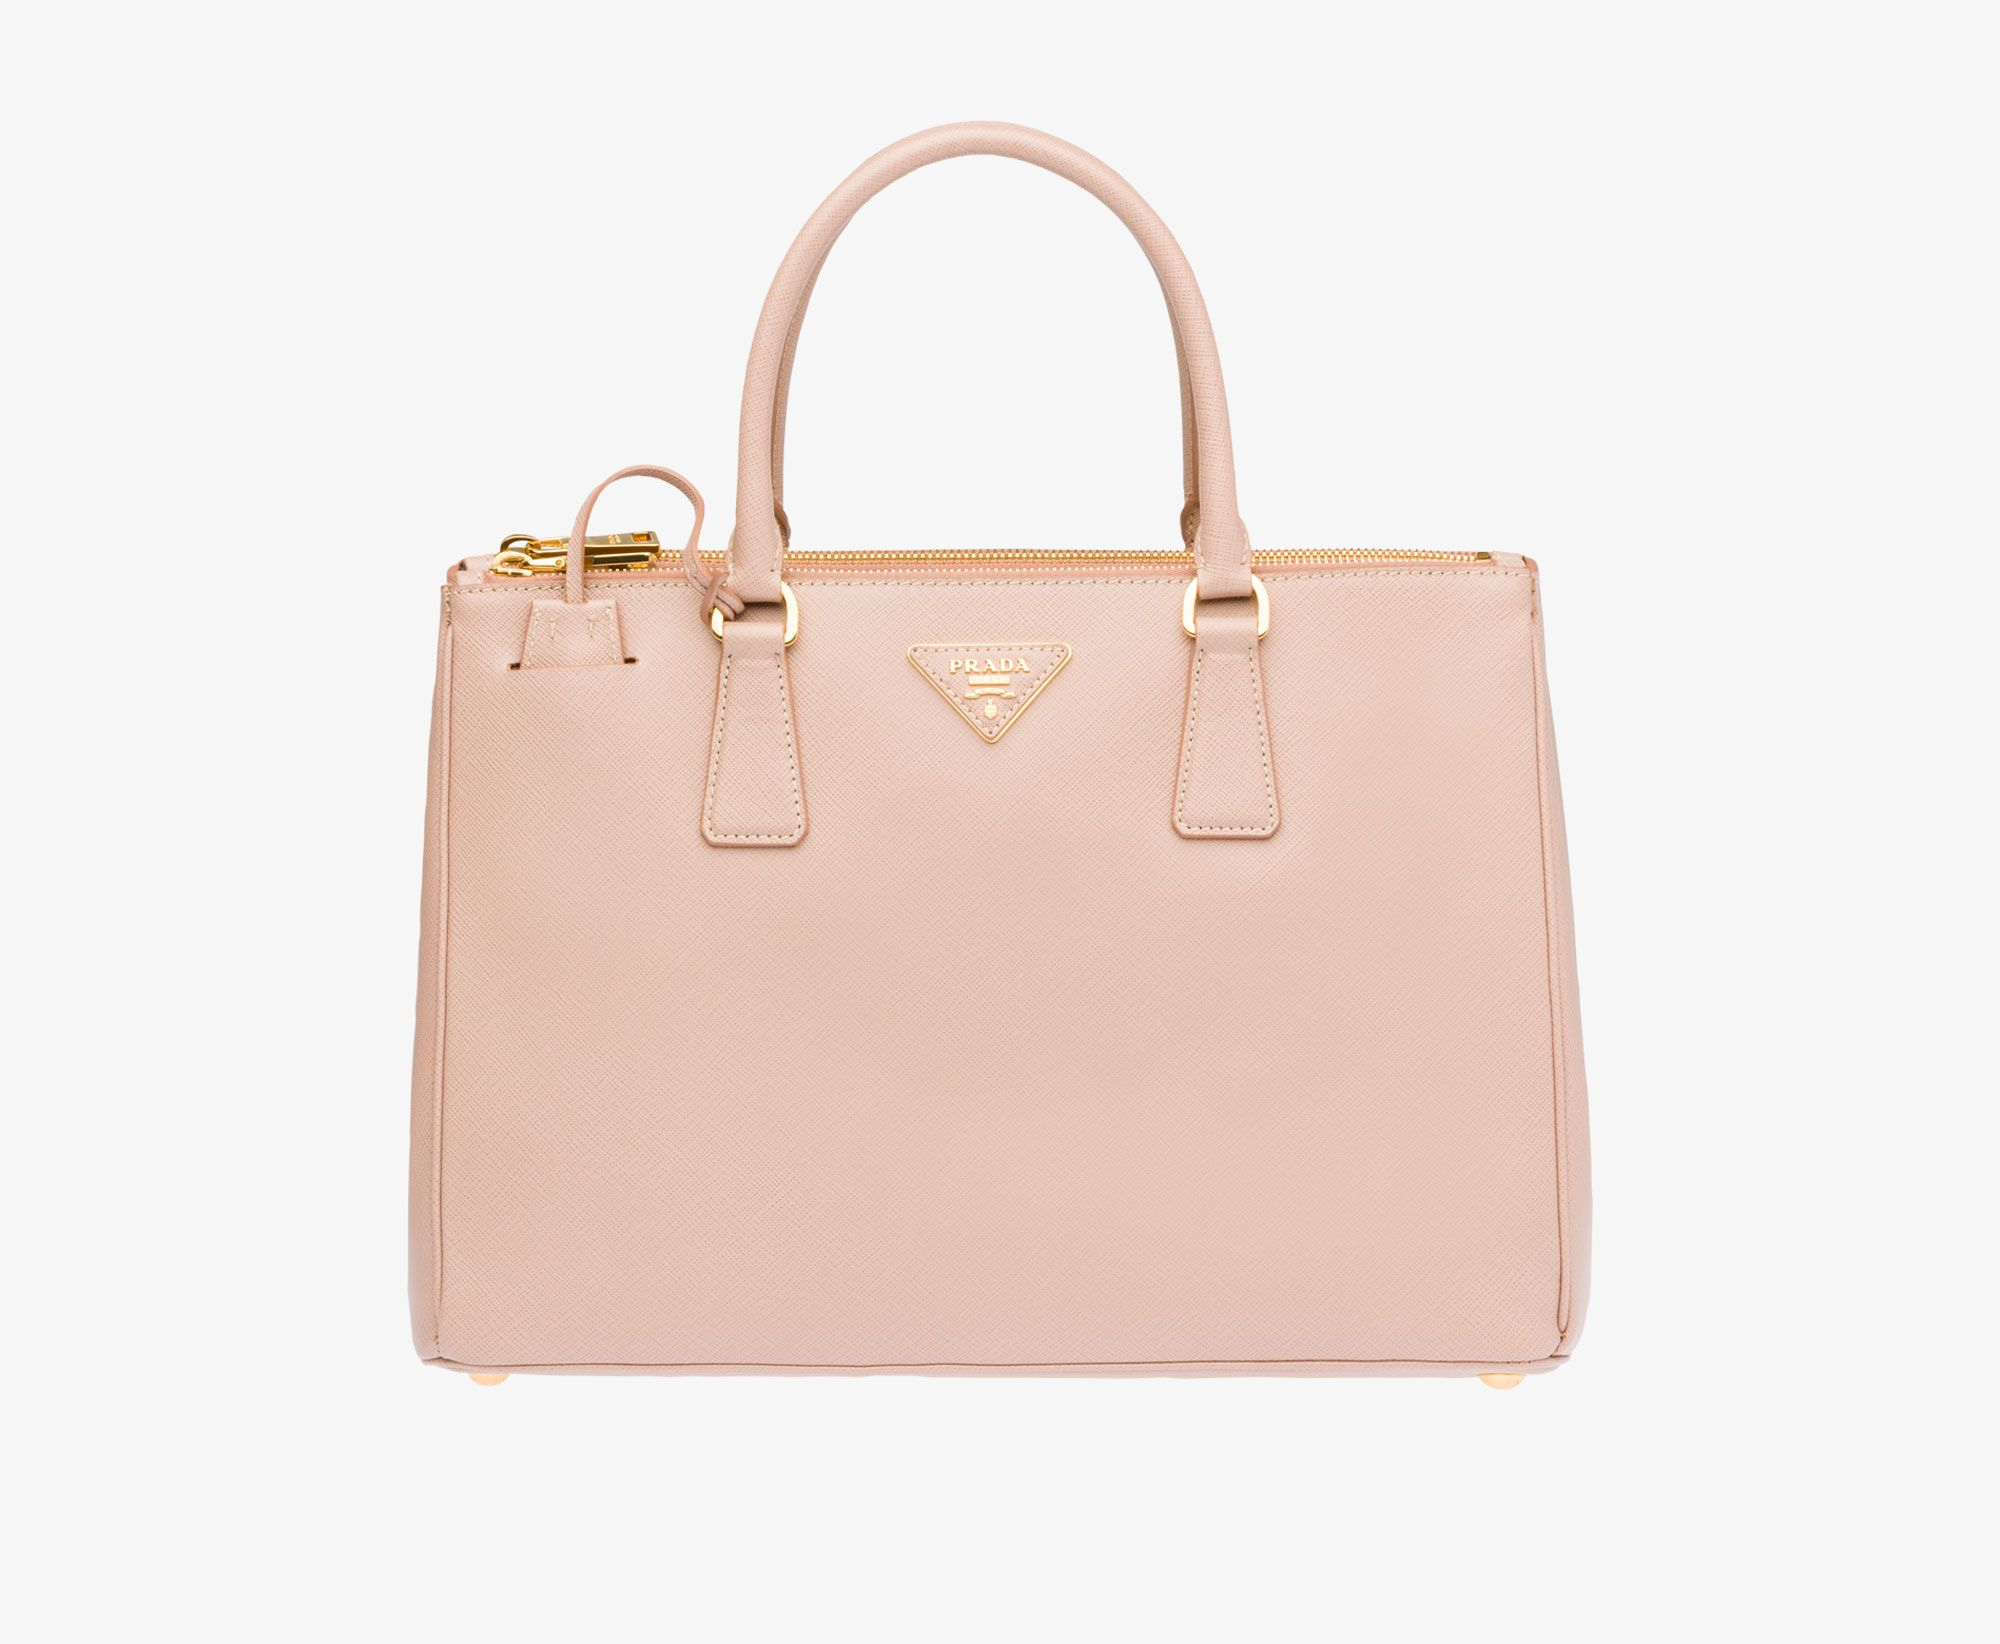 9203c38dbbf60 Prada Galleria Saffiano leather bag Double leather handle Detachable  adjustable leather shoulder strap Gold-plated hardware Metal lettering logo  on leather ...